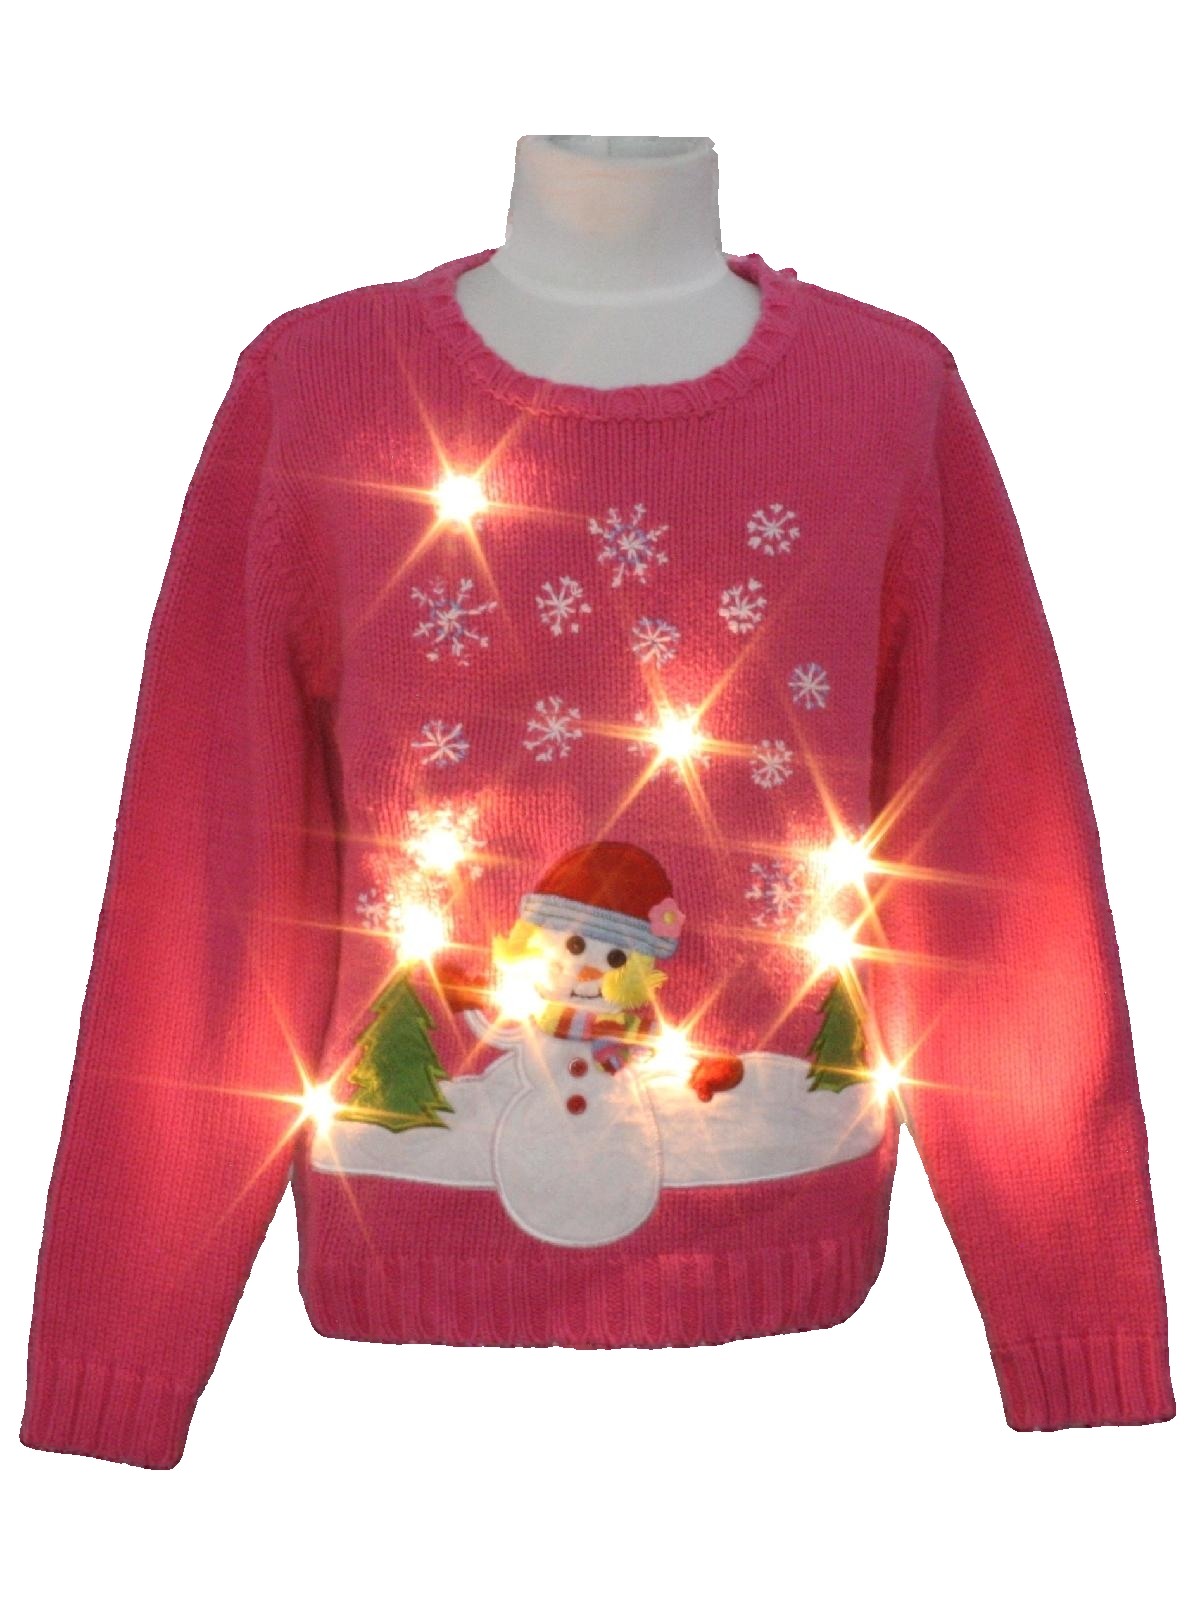 womensgirls white lightup ugly christmas sweater childrens place girls pink background cotton ramie blend pullover longsleeve ugly christmas white - Childrens Ugly Christmas Sweaters